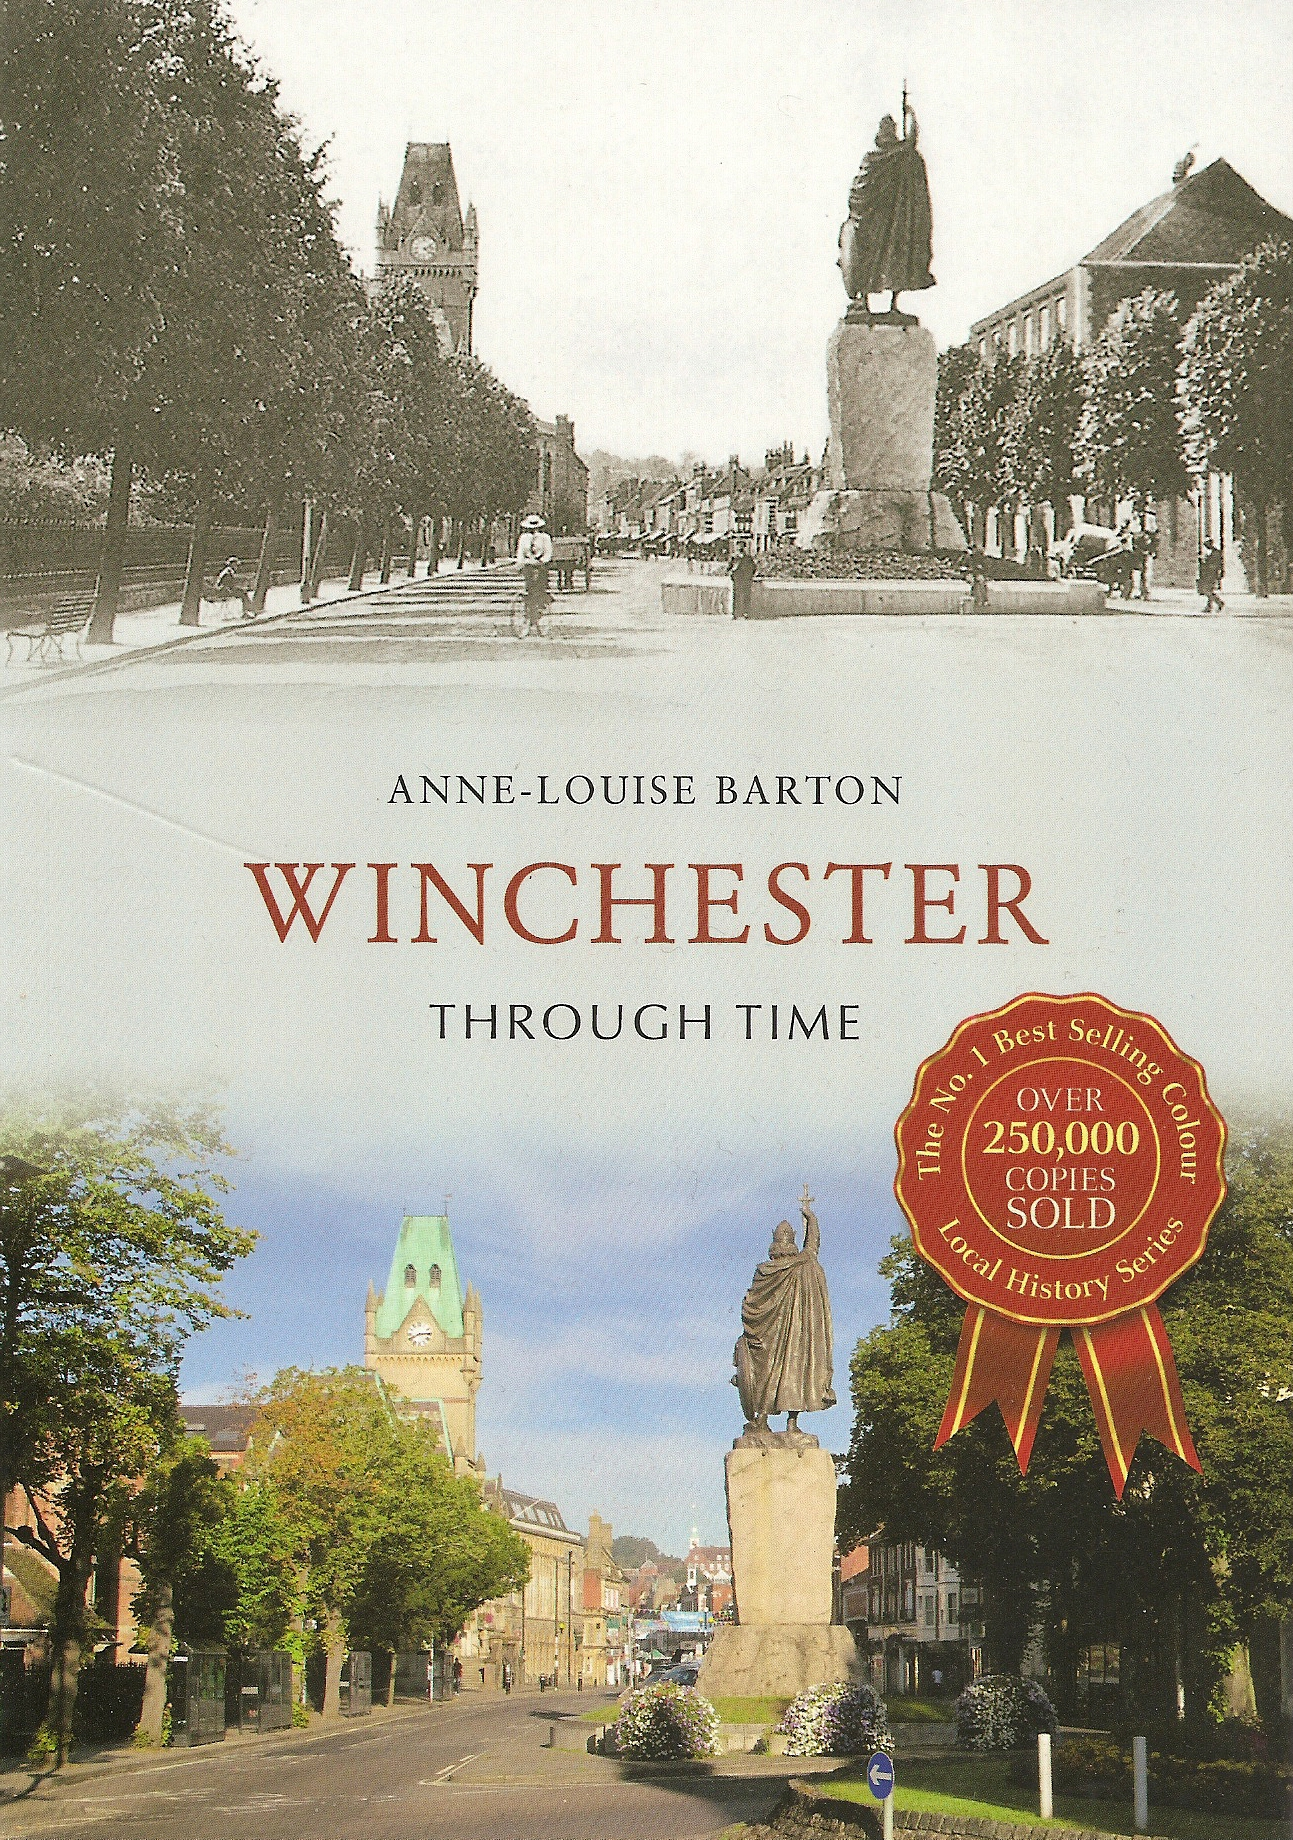 'Winchester Through Time' – a history of Winchester by Anne-Louise Barton